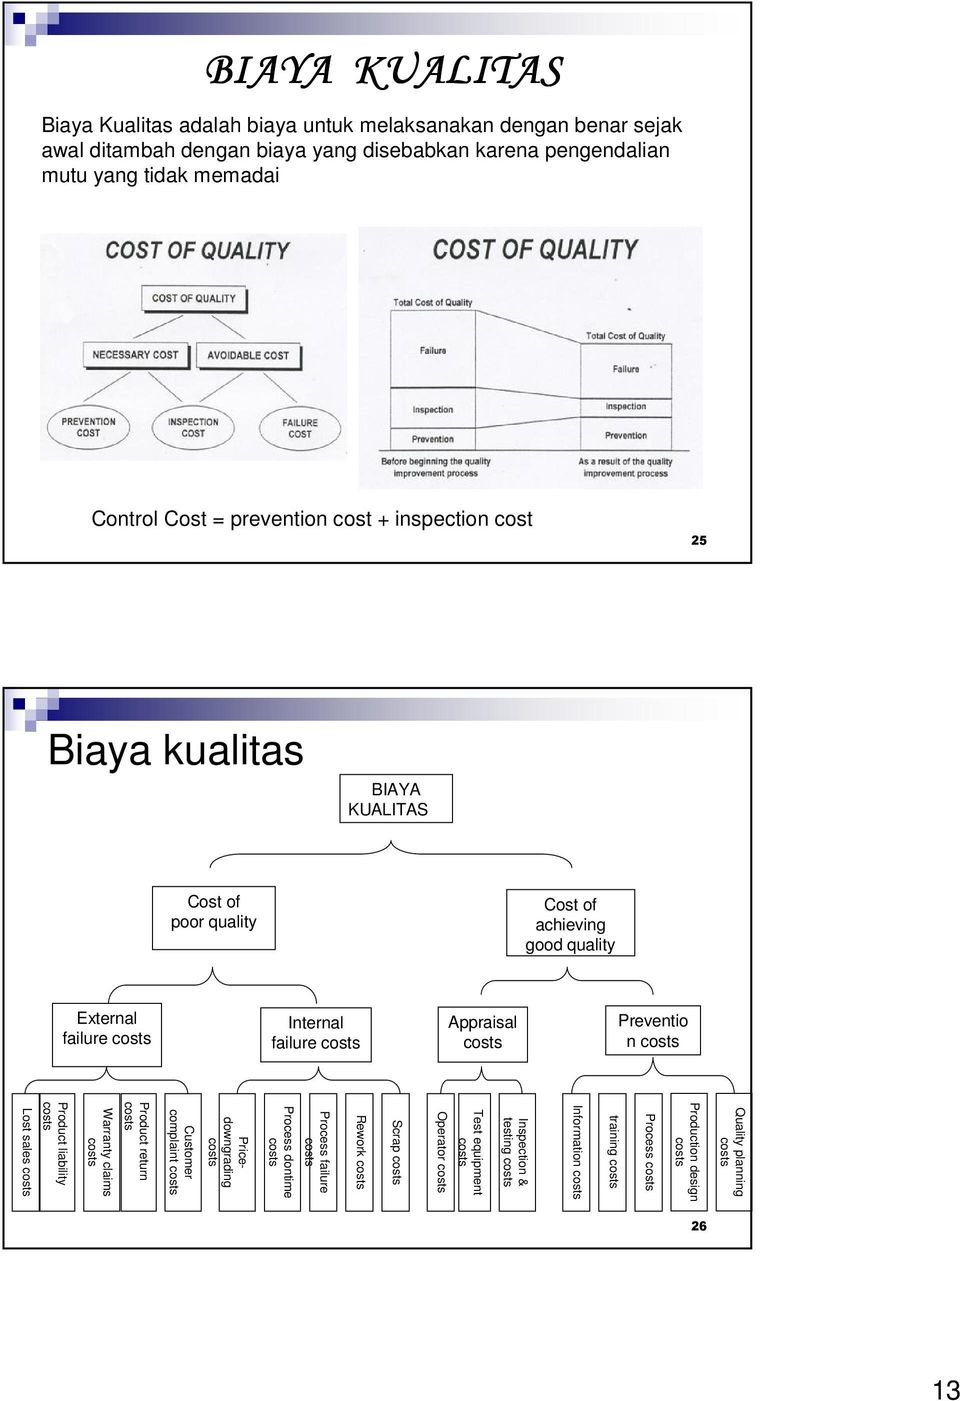 Preventio n costs Quality planning costs Production design costs Process costs training costs Information costs Inspection & testing costs Test equipment costs Operator costs Scrap costs